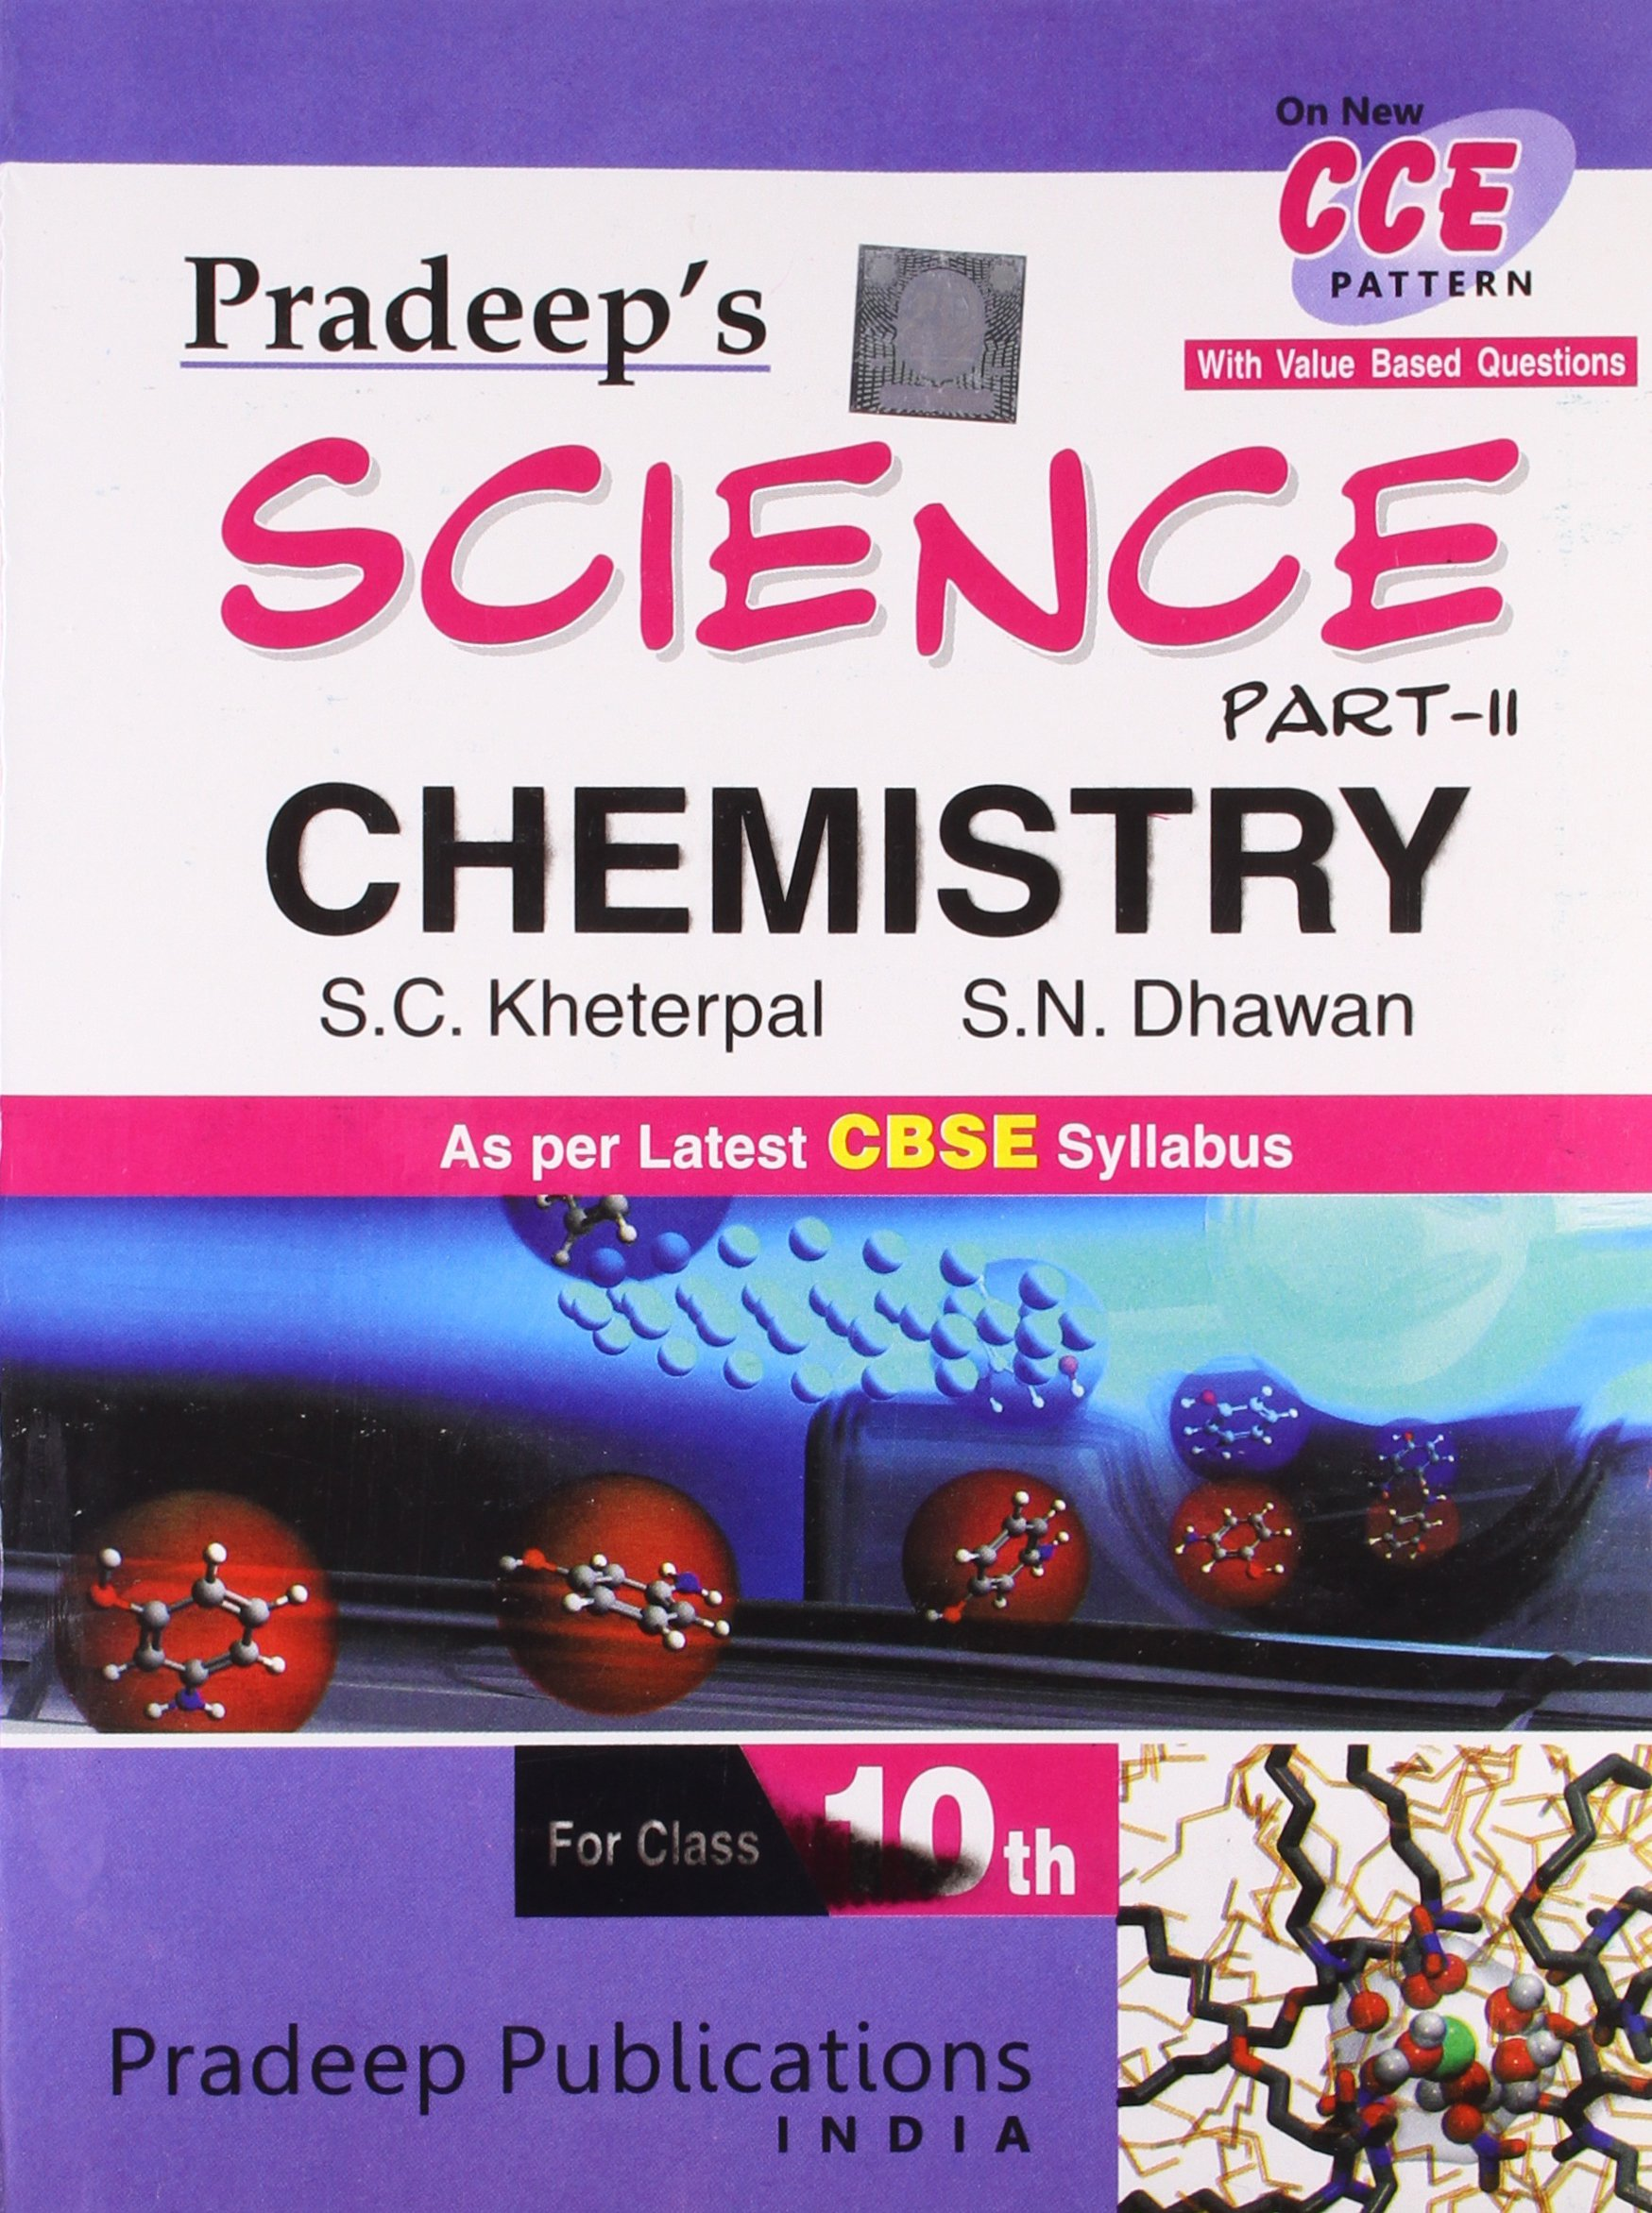 Buy pradeep s science chemistry for class x part ii book online at low prices in india pradeep s science chemistry for class x part ii reviews